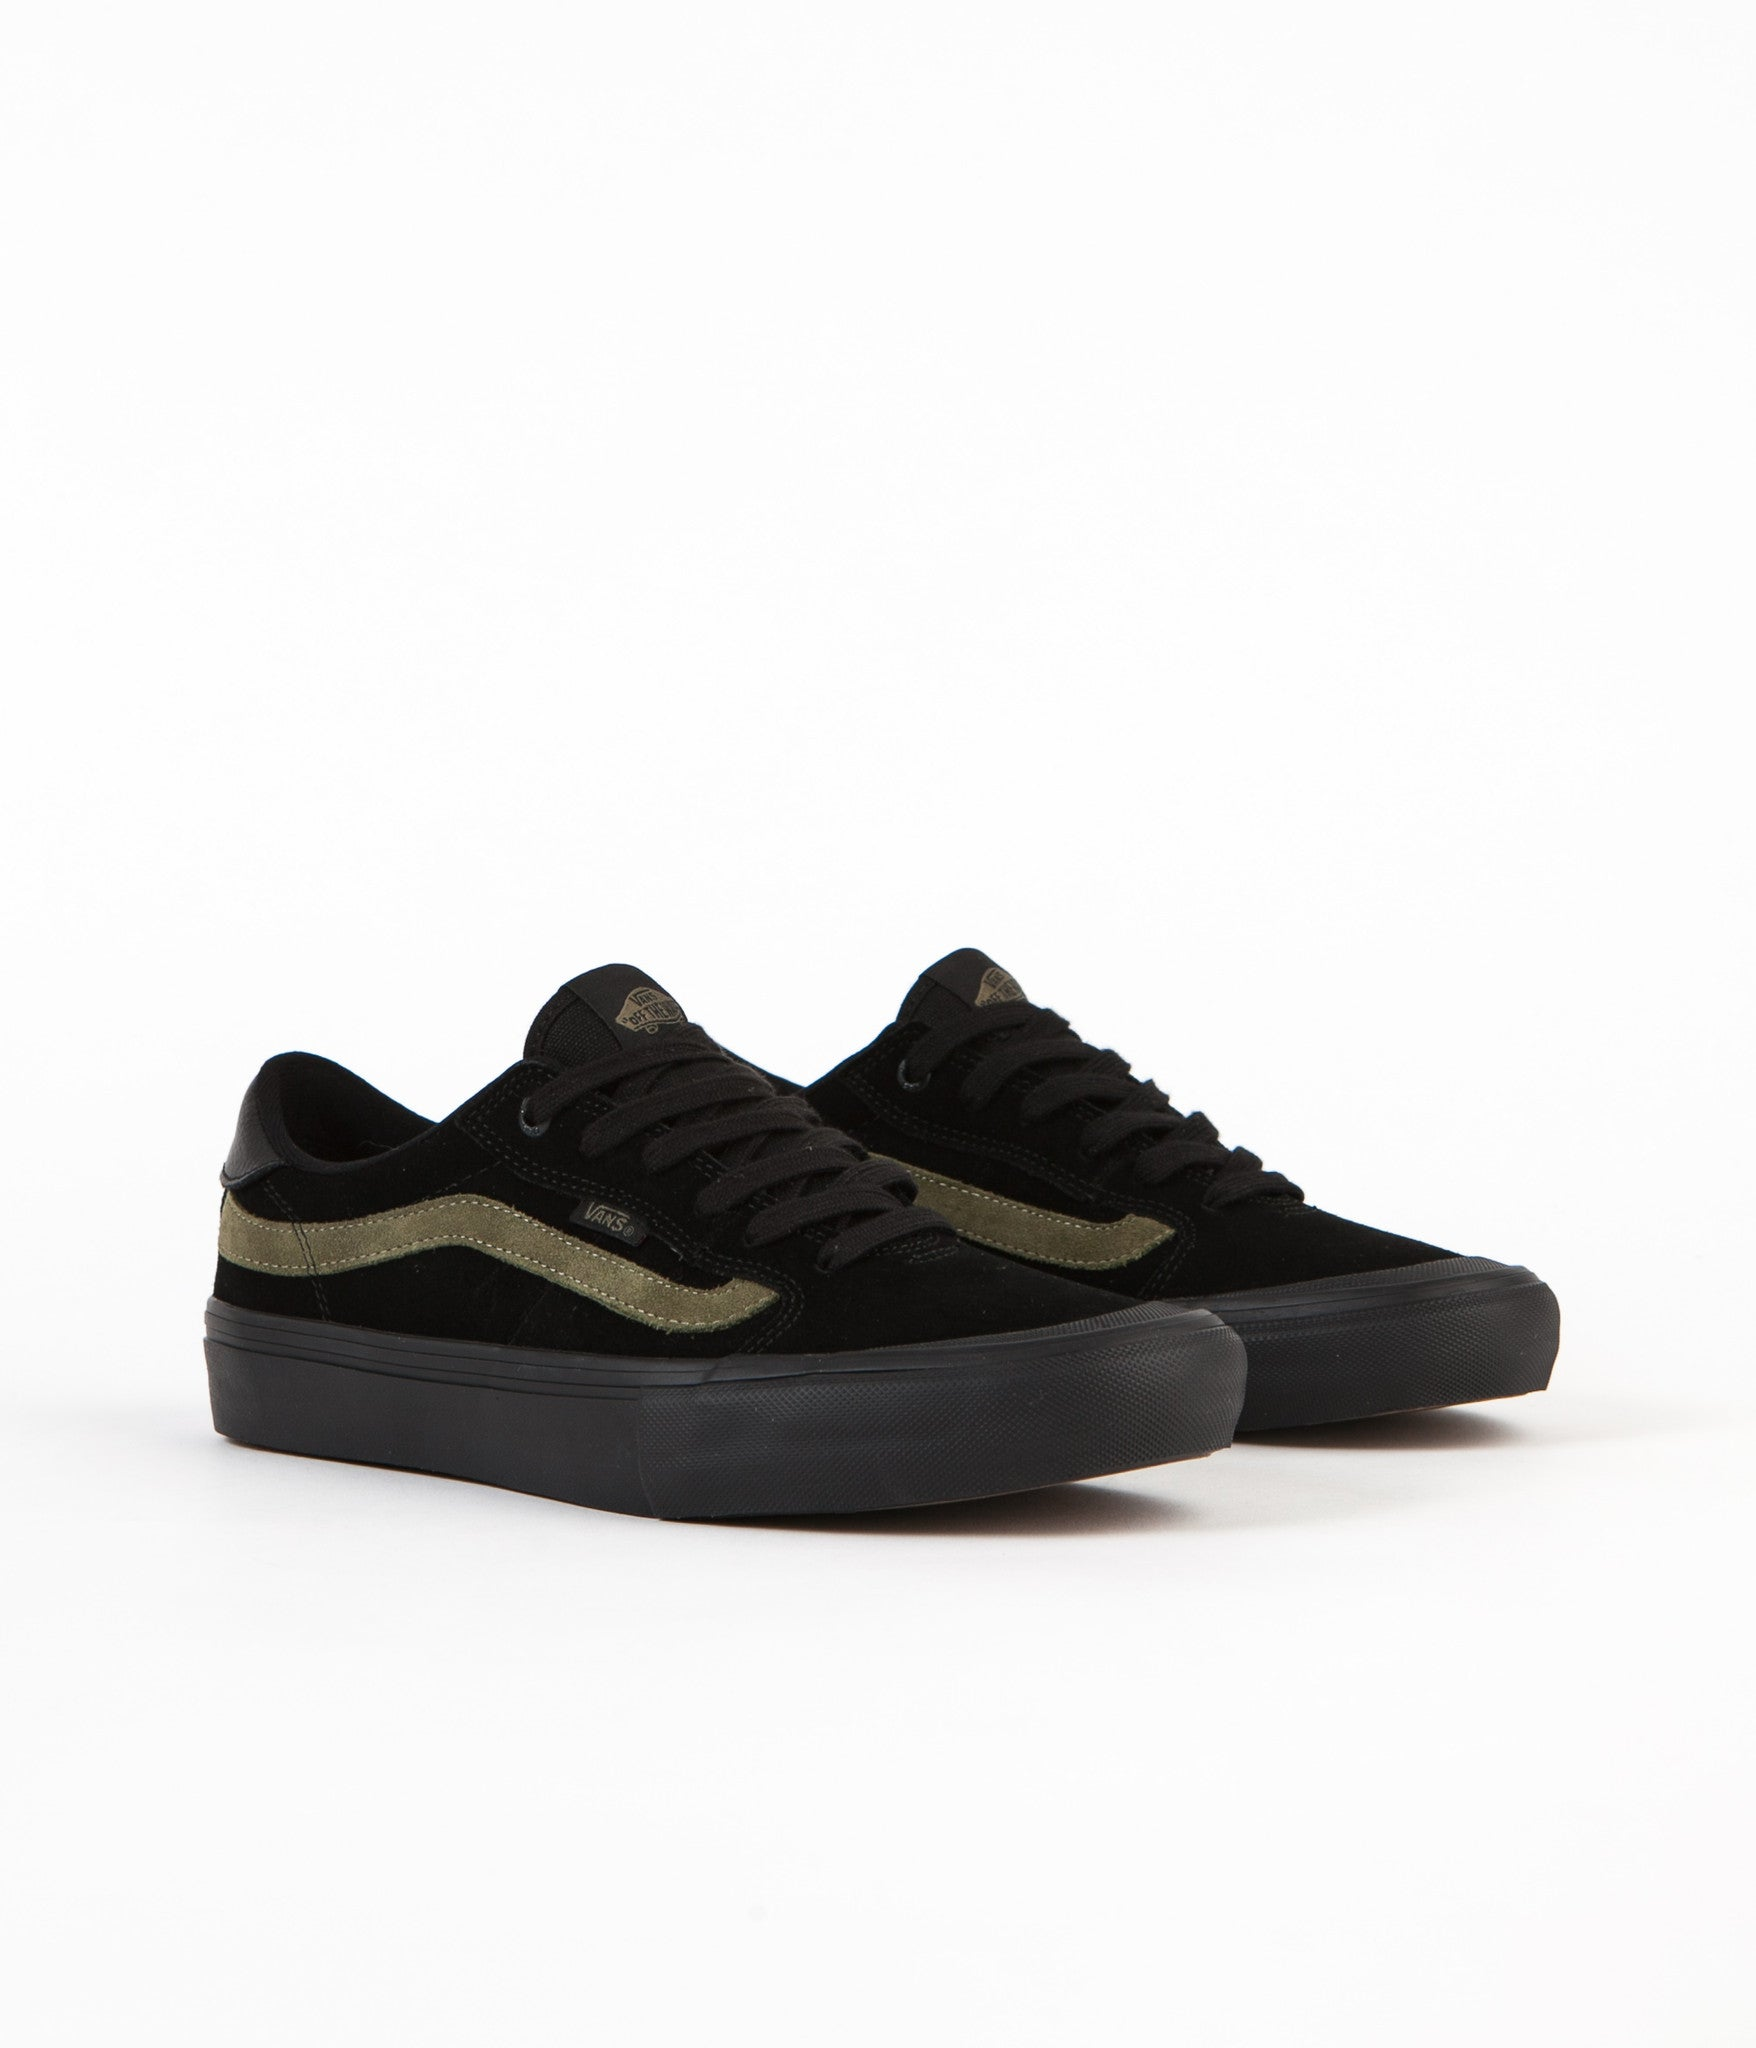 Vans Style 112 Dakota Roche Pro Shoes - Black / Burnt Olive